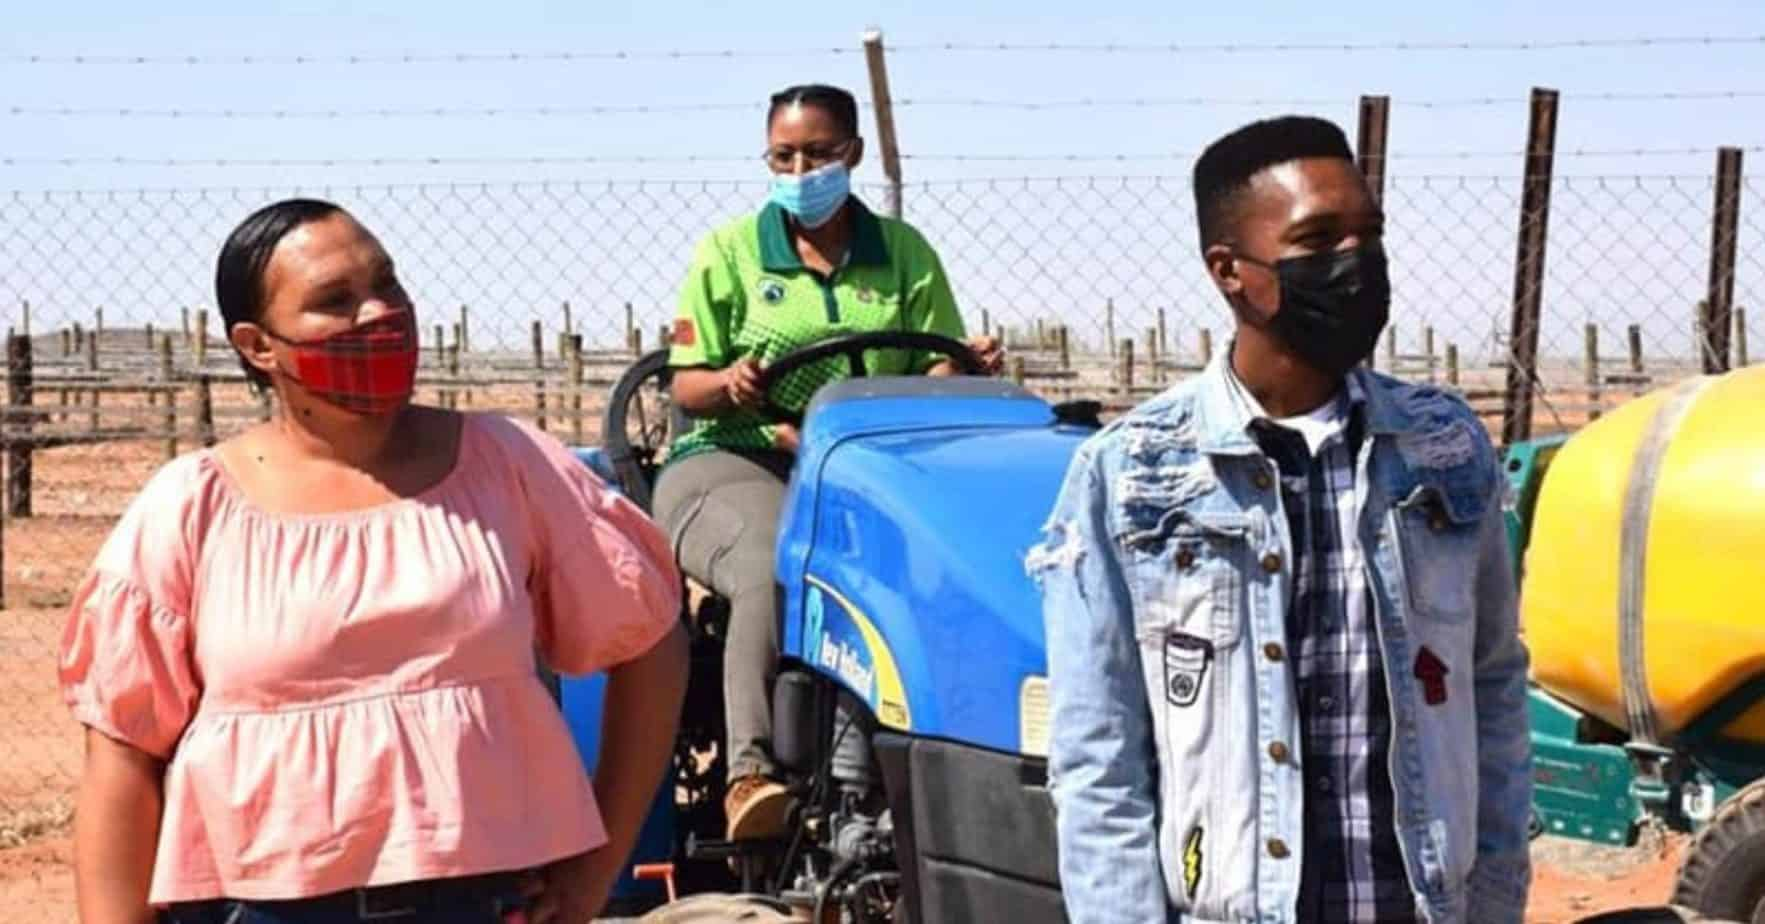 Northern Cape agriculture MEC Mase Manopole pledged her department's support to 75 agricultural graduates placed on farms across the province. Photo: Supplied/Food For Mzansi